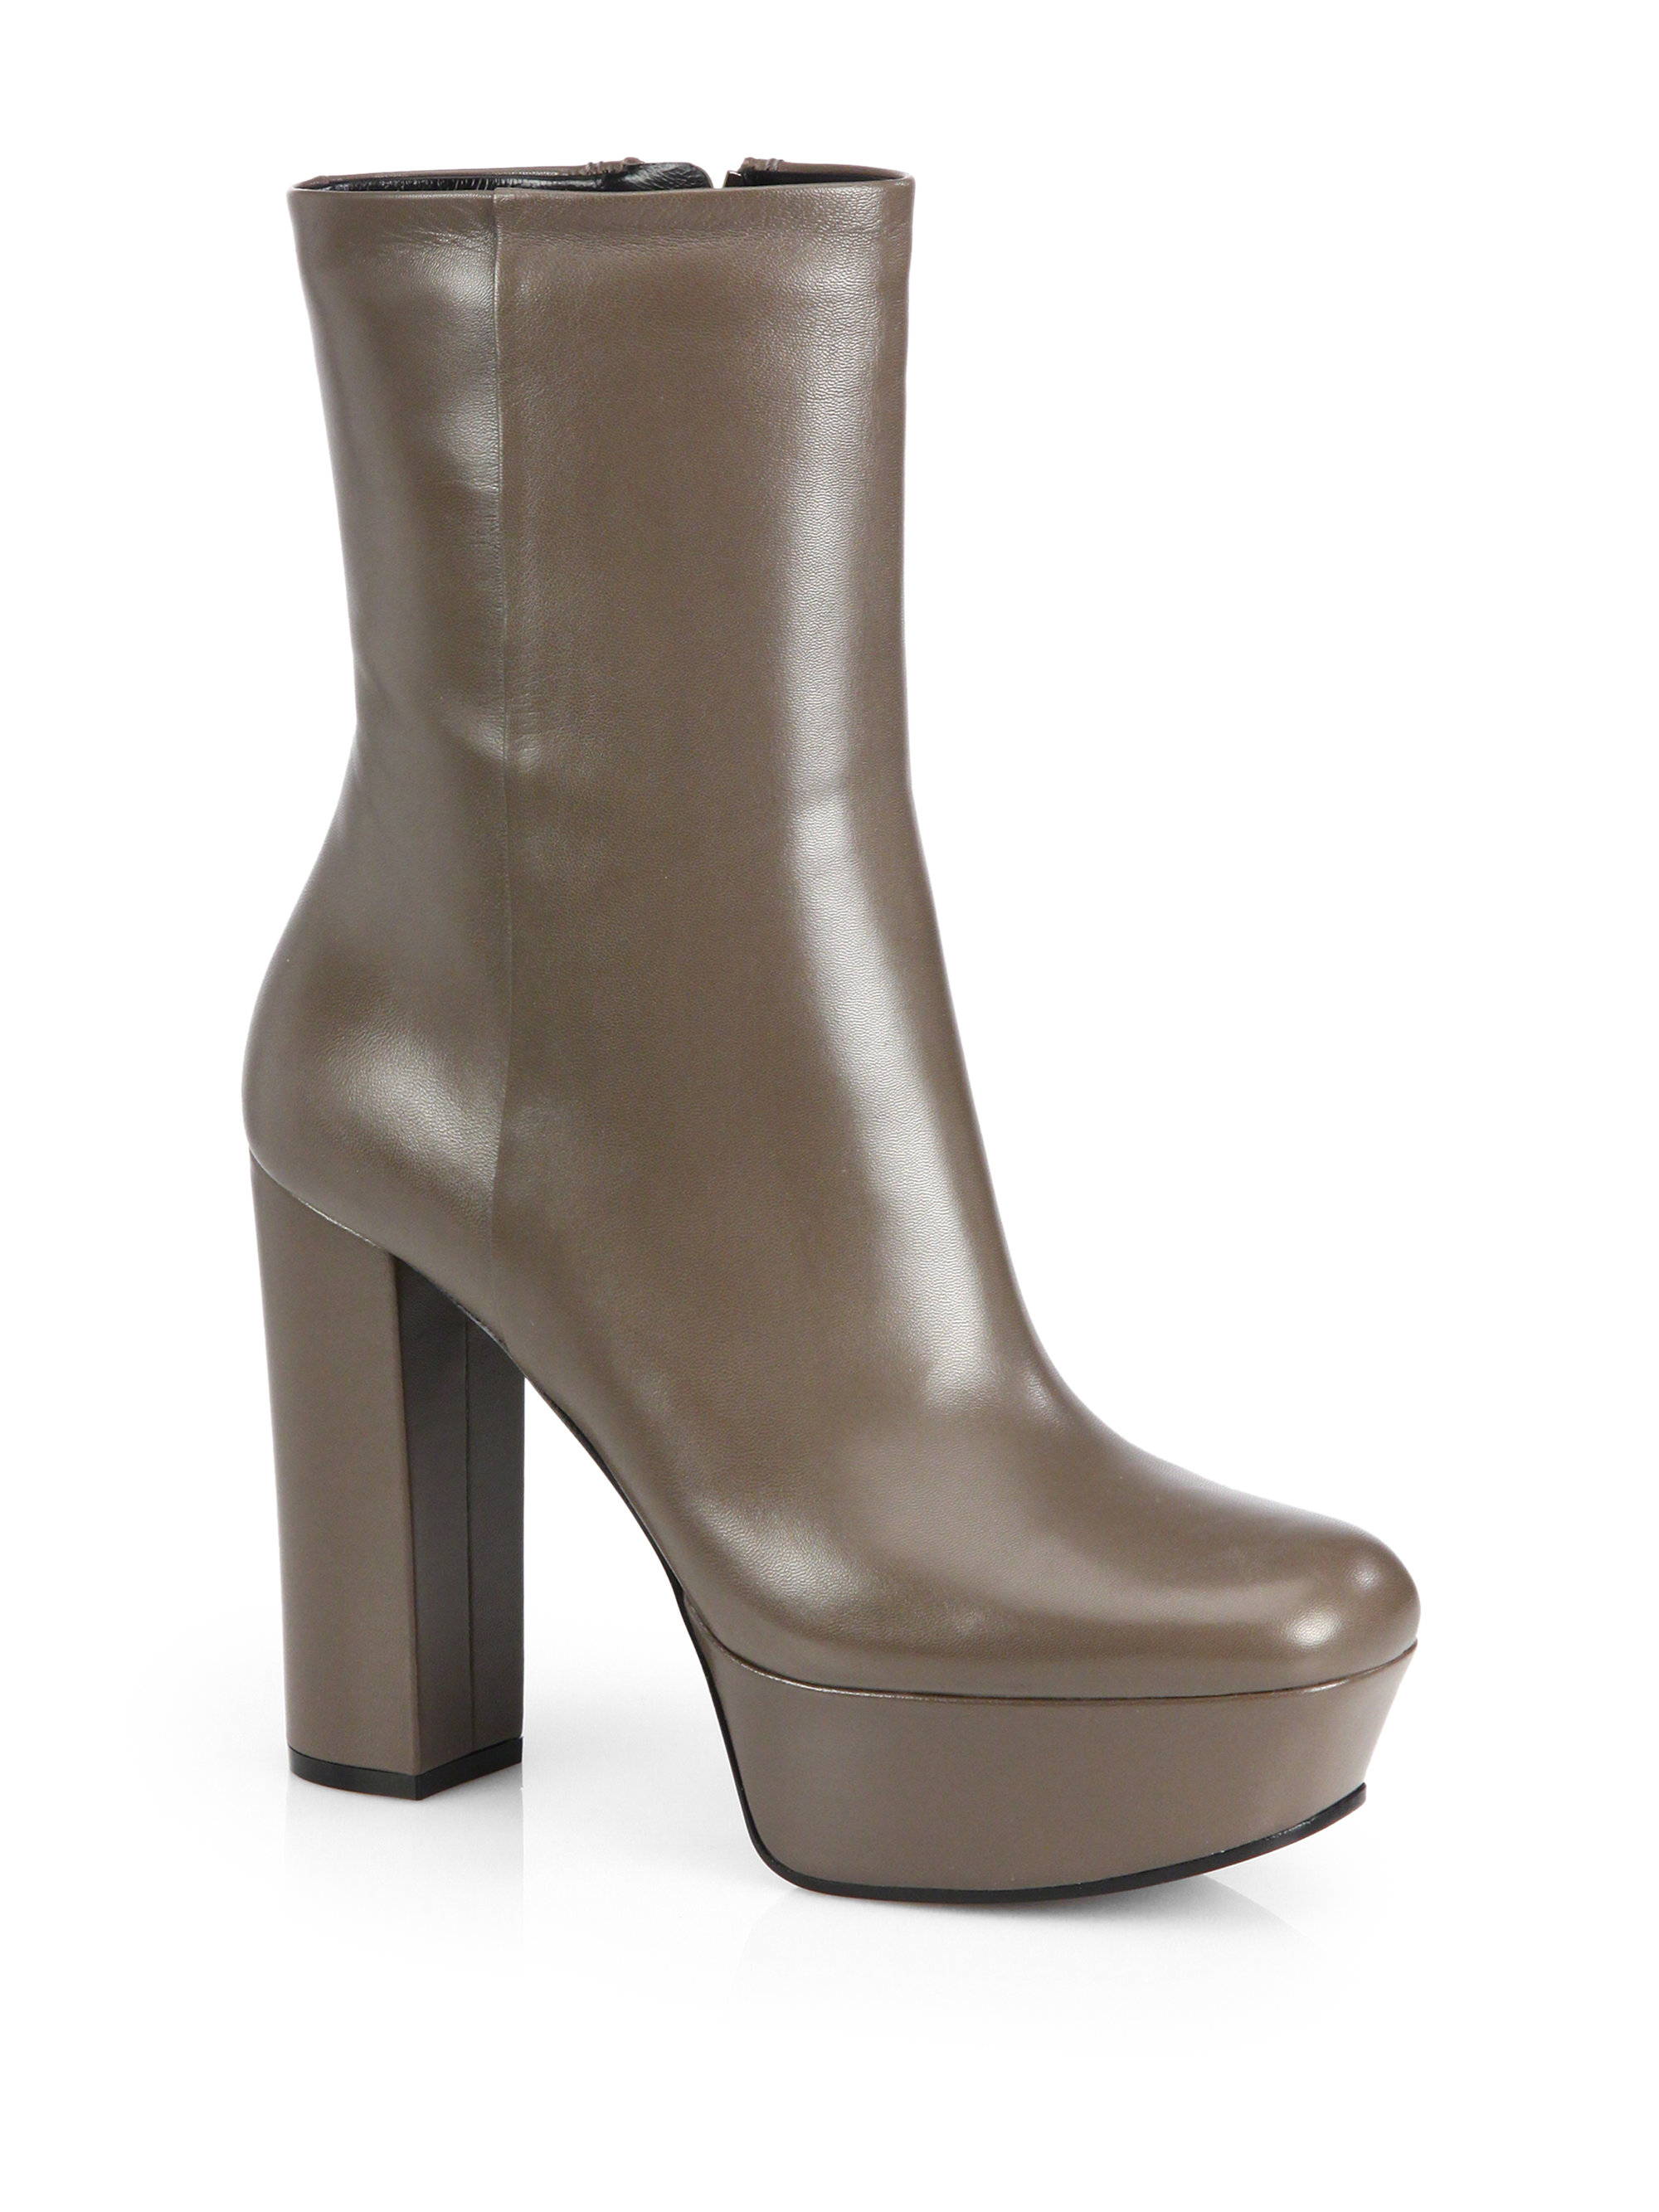 daa522470d2e Lyst - Gucci Leather Platform Ankle Boots in Gray